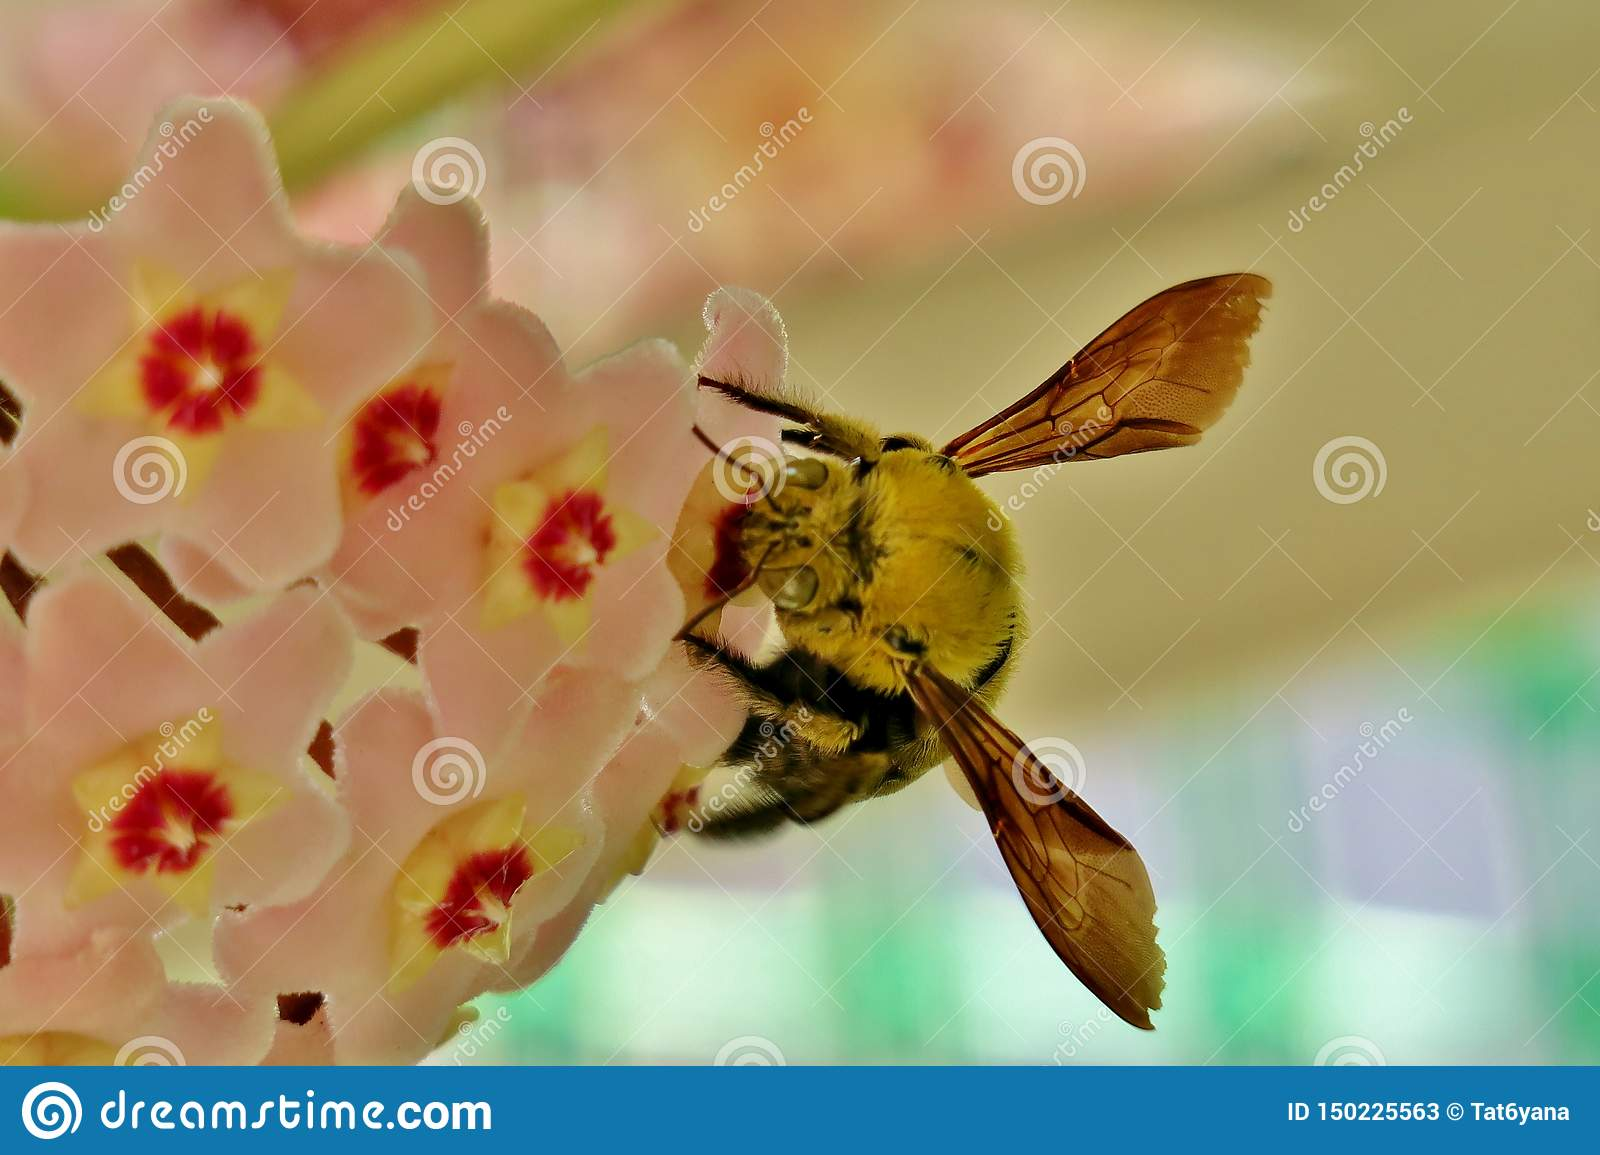 Yellow bumblebee collects pollen from small pink flowers